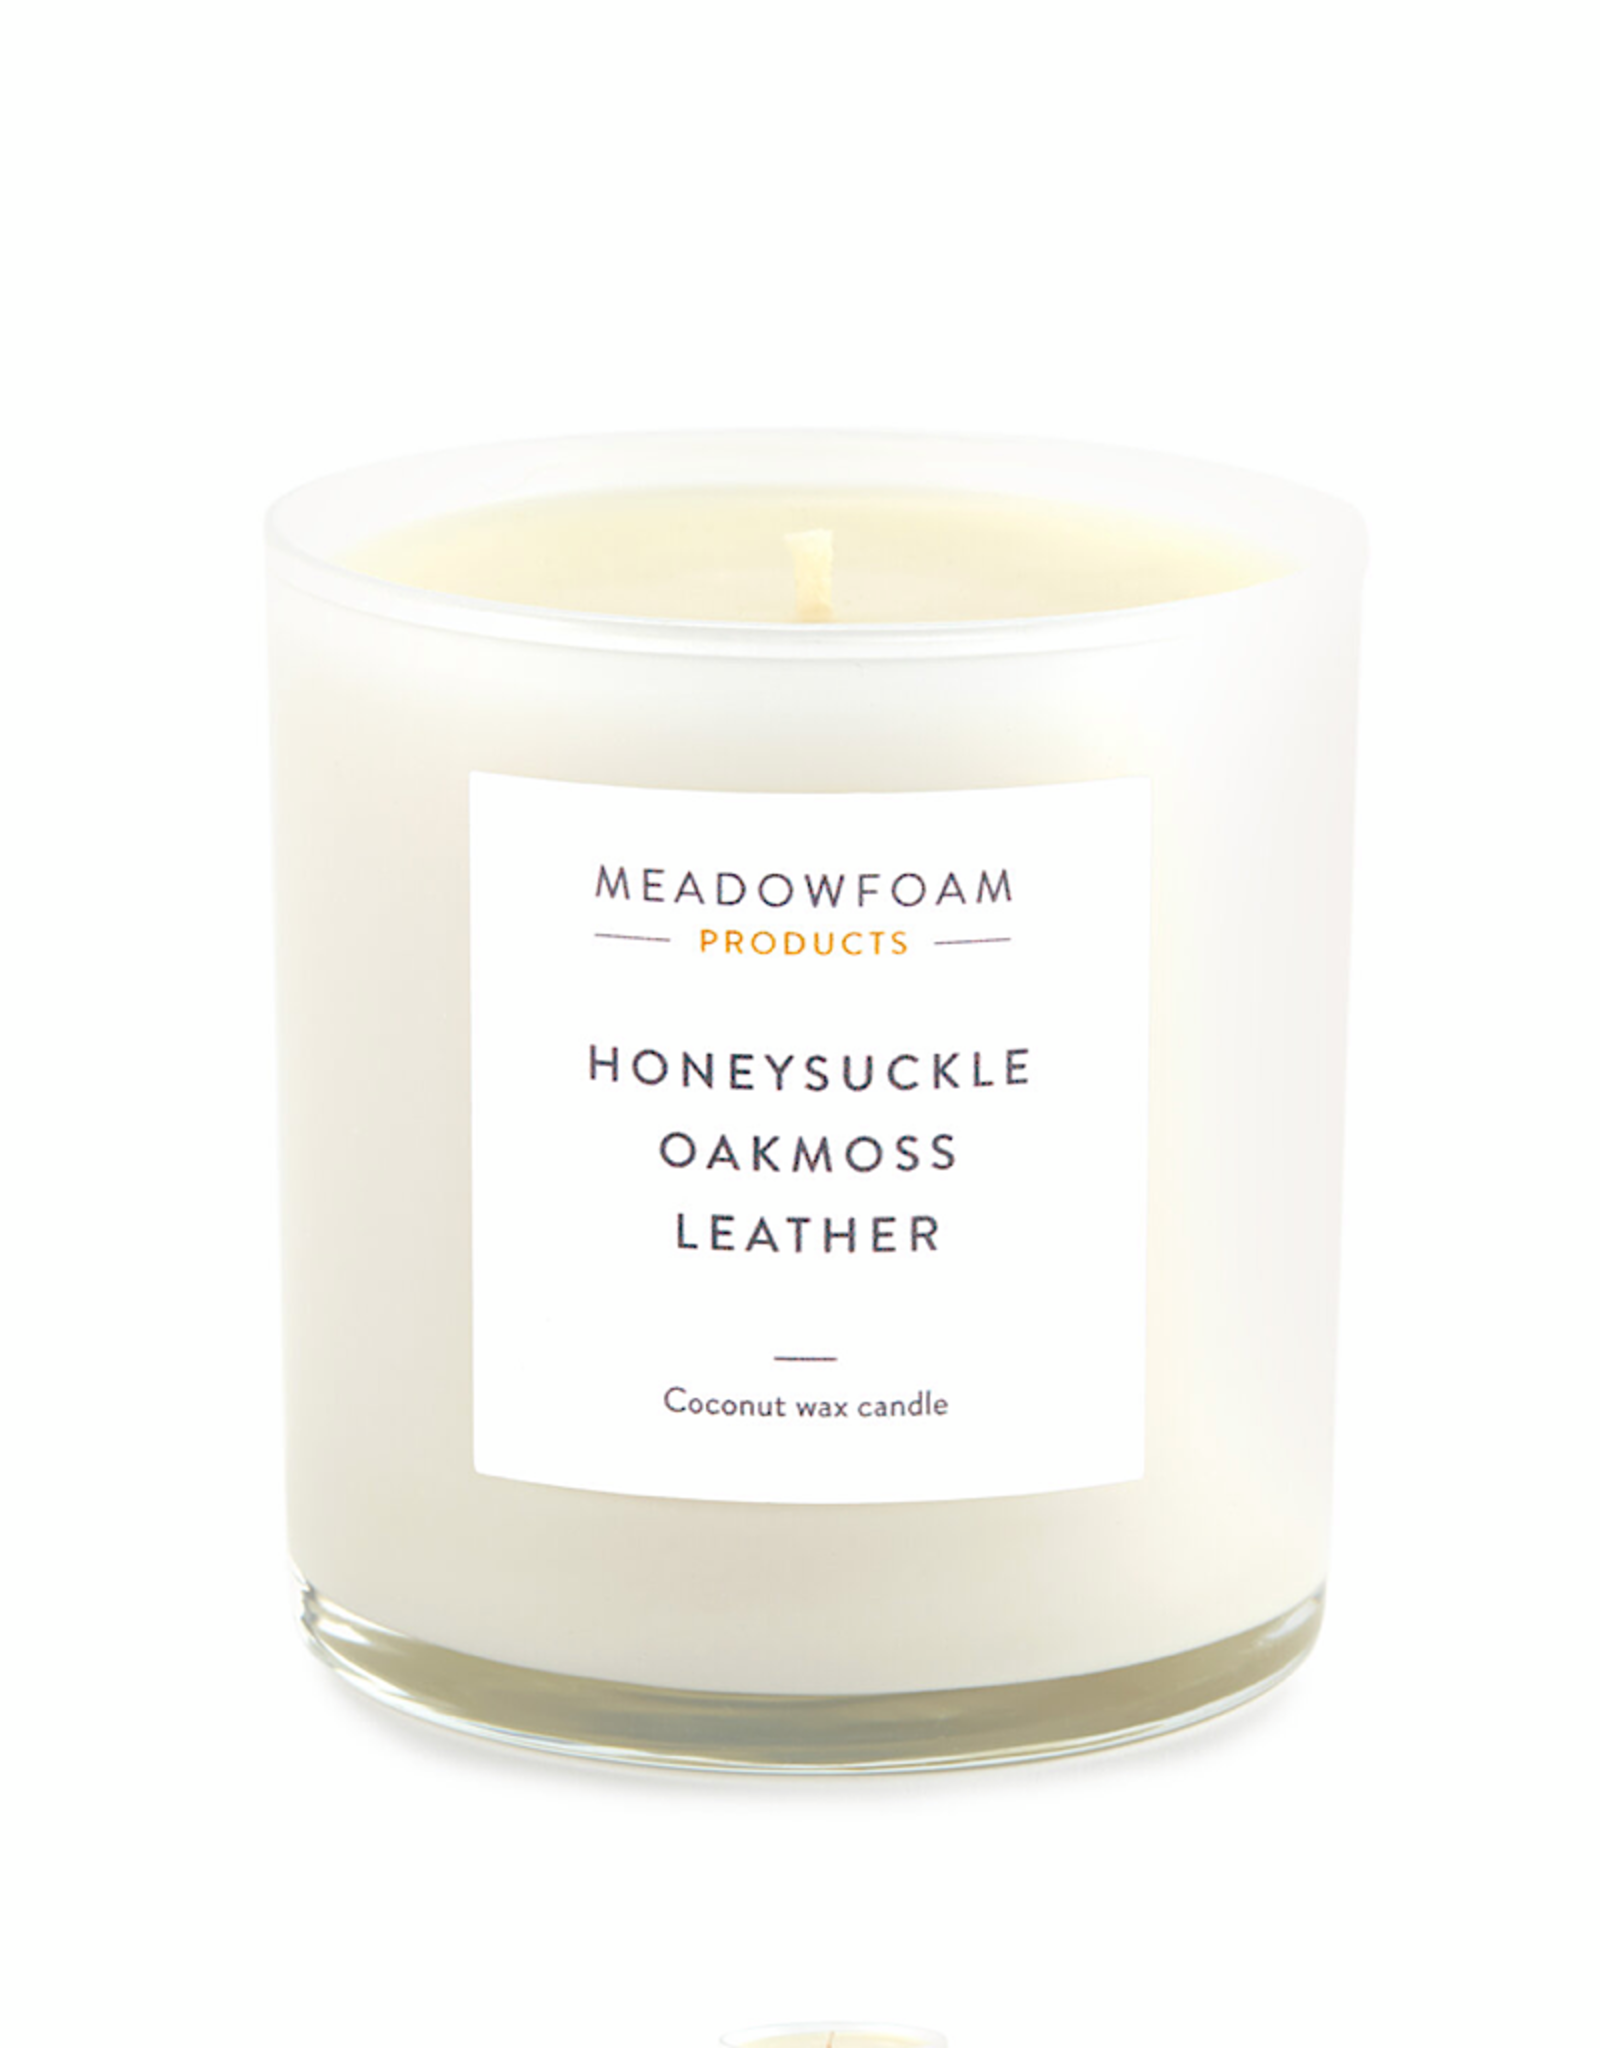 Meadowfoam 13.5oz Candle COTTON Wick in Cocktail Glass